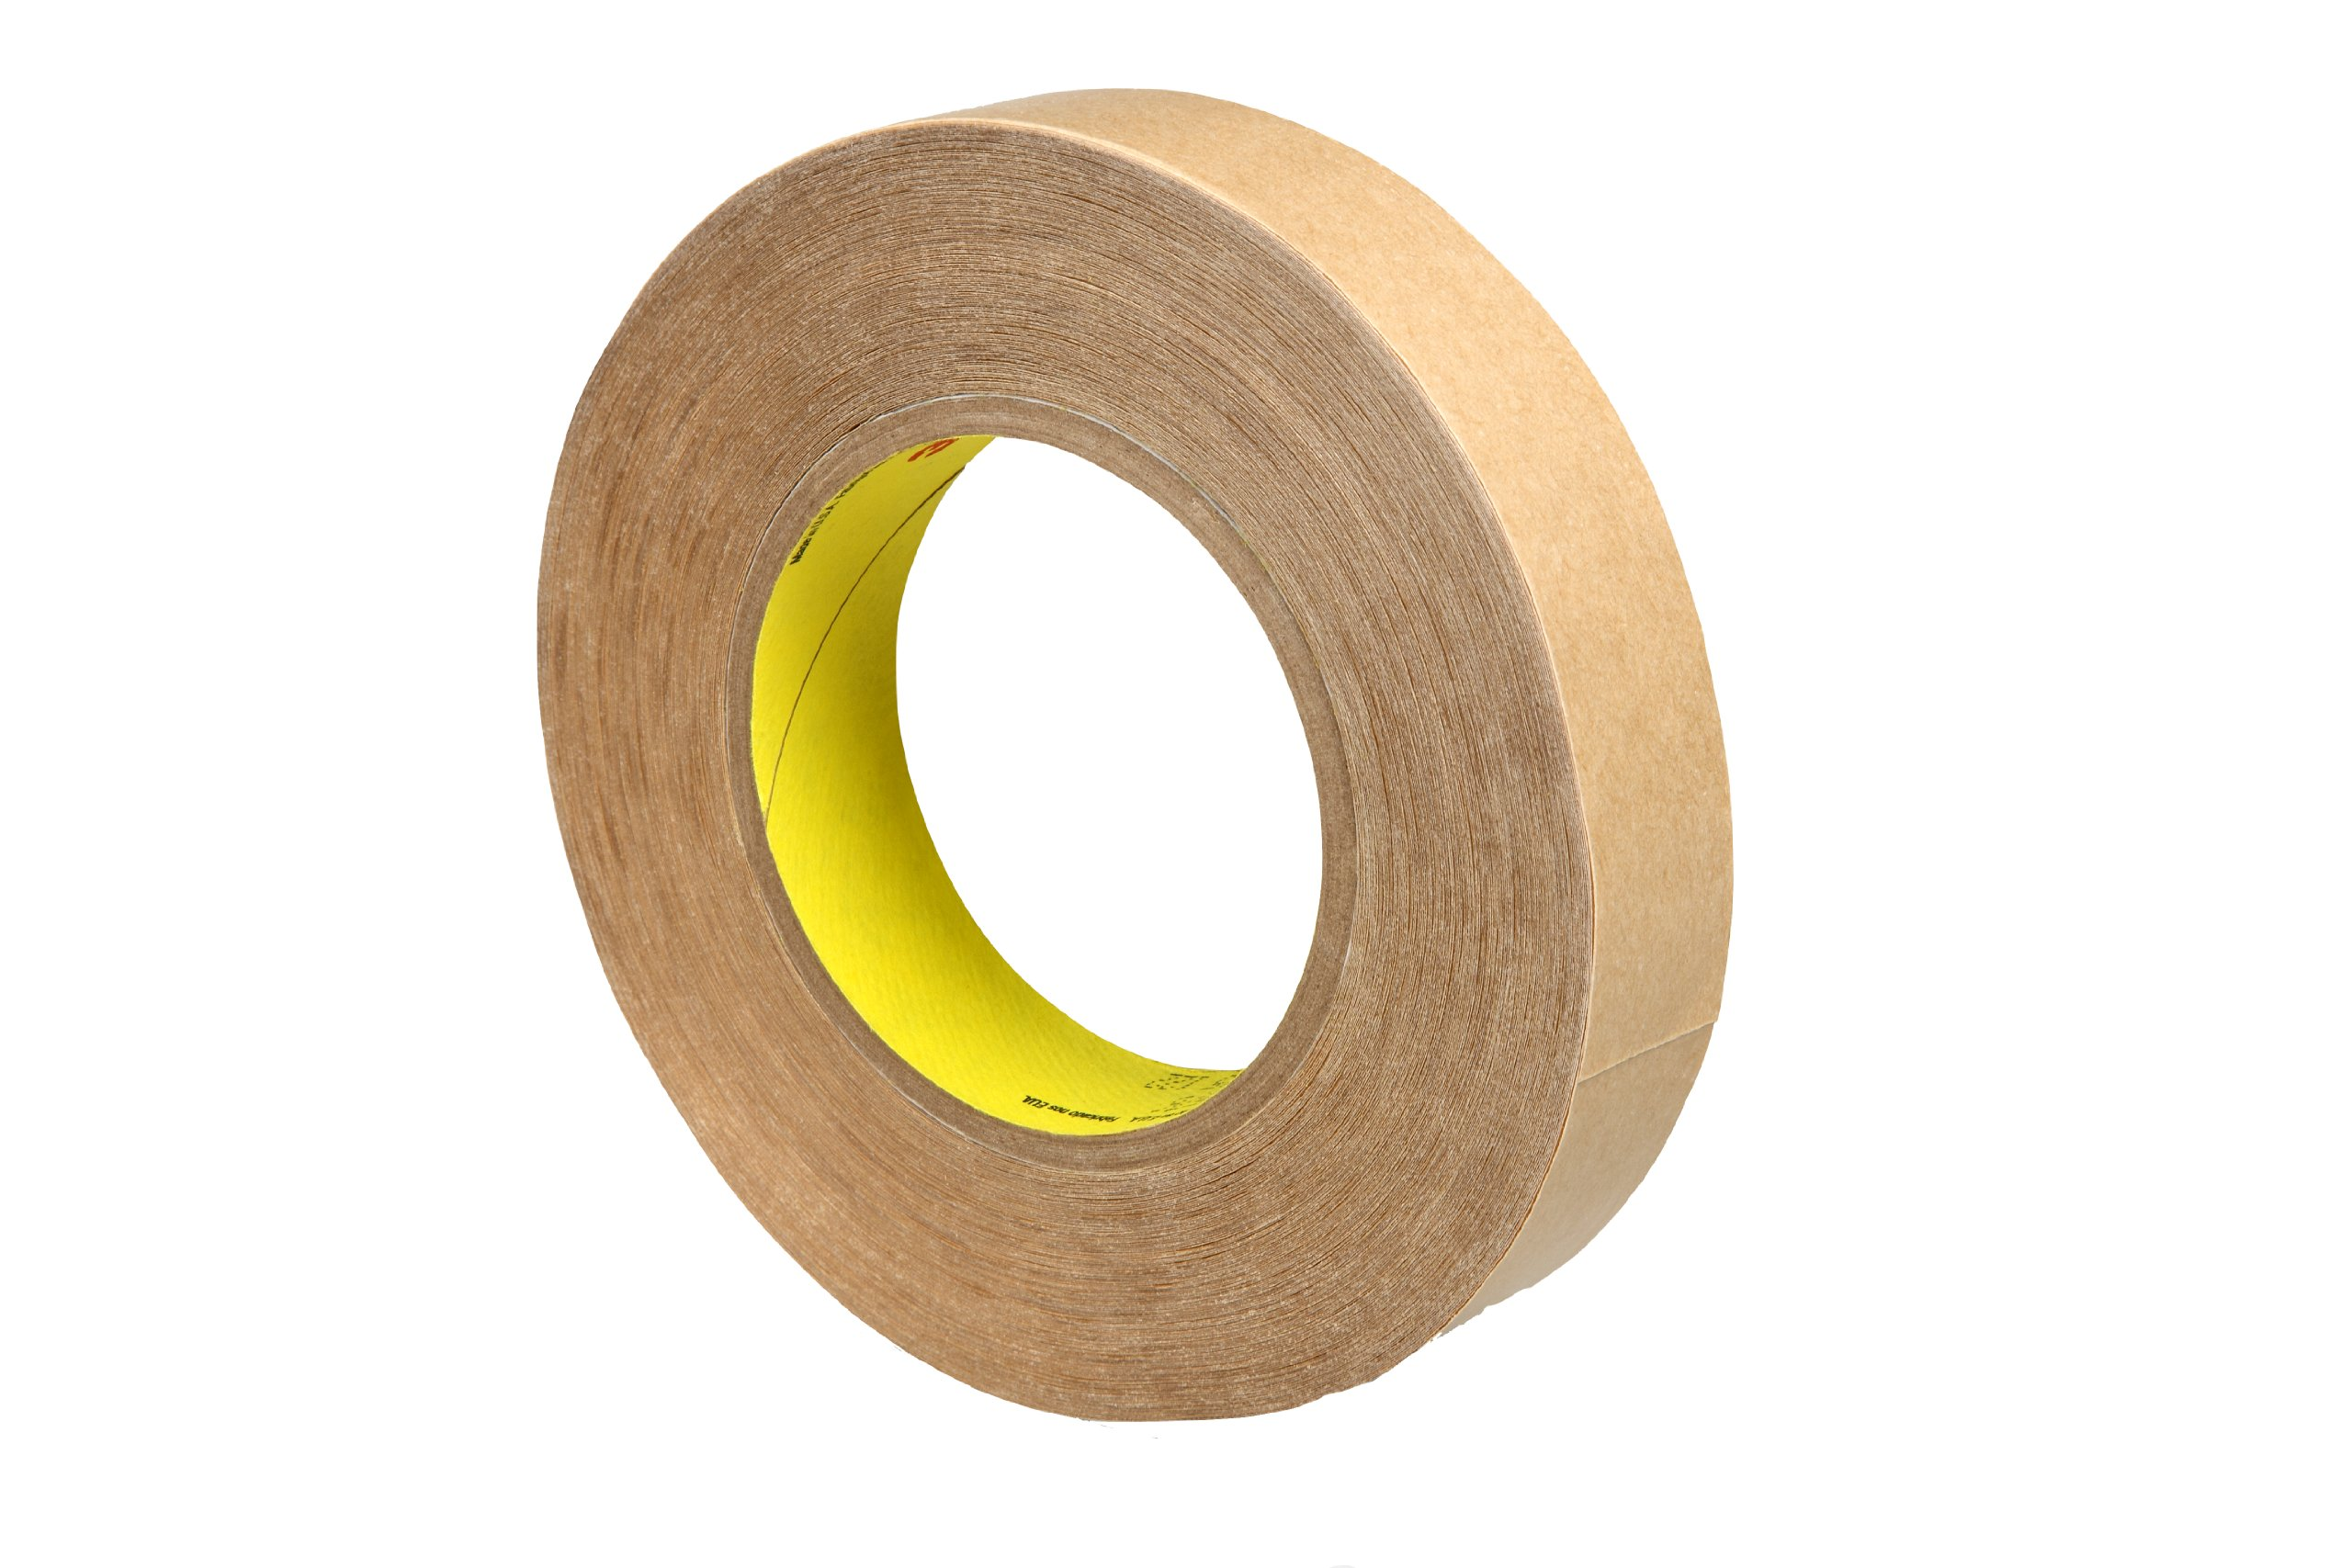 3M Double Coated Tape 9576 Clear Kut, 1 in x 60 yd 4.0 mil (Case of 36)